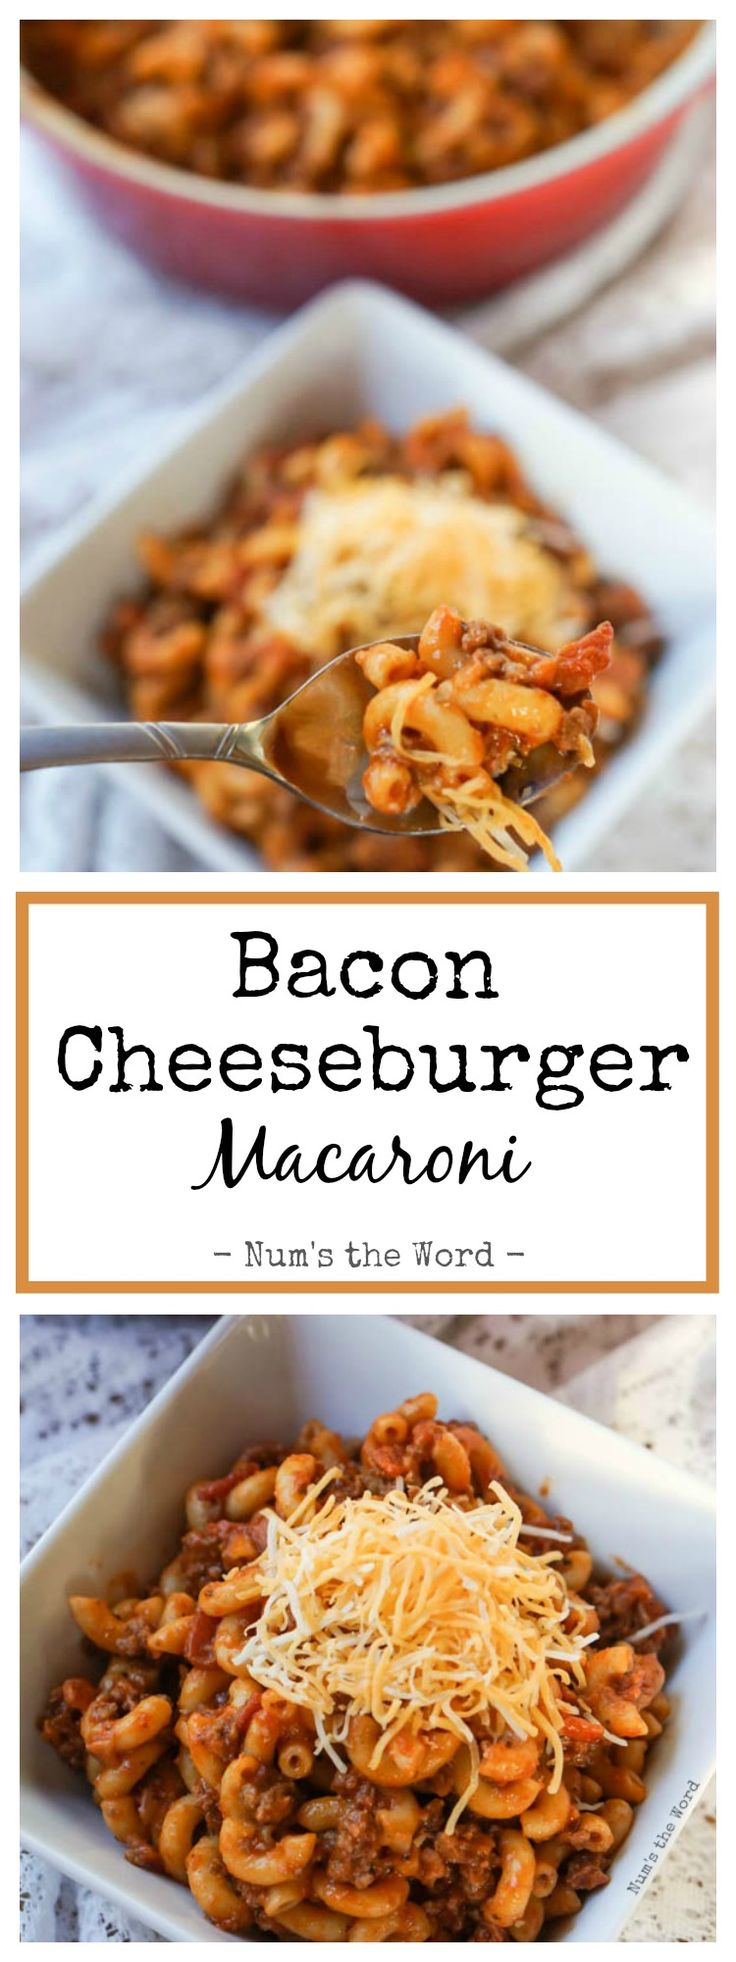 Bacon Cheeseburger Macaroni is a 30 minute meal that is perfect for busy weeknight and picky kids.  My kids asked for seconds and more the next day!